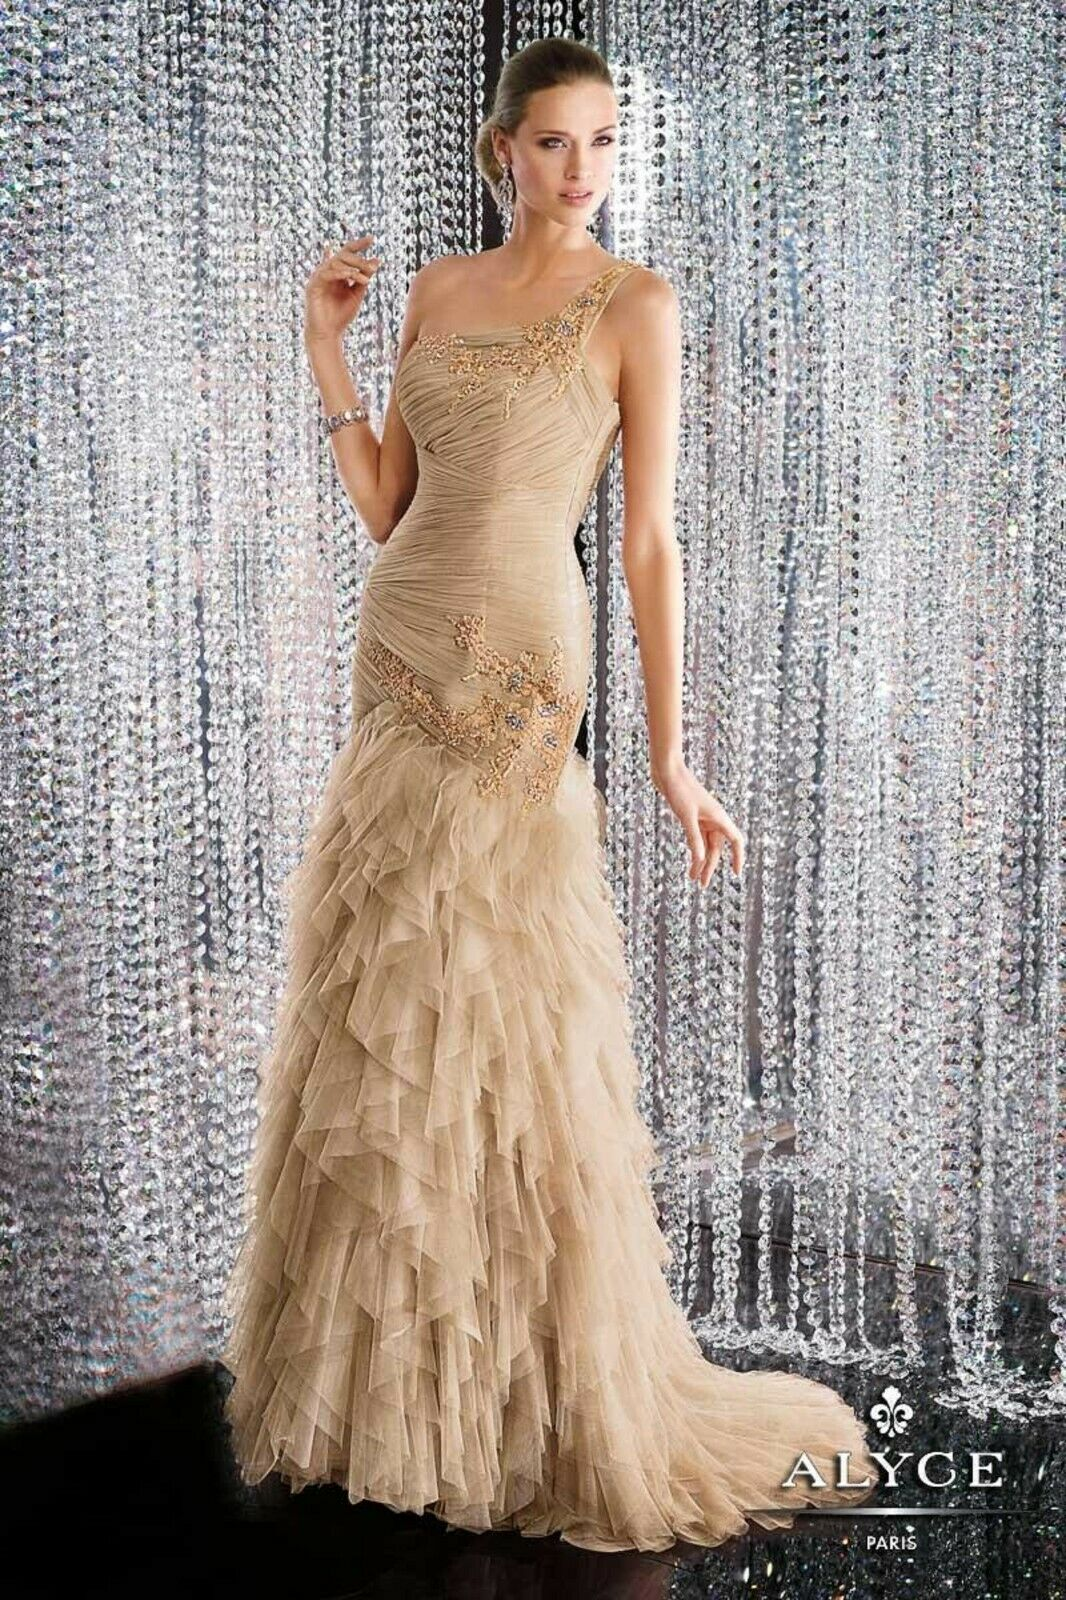 NWT Alyce Black Label 5560 Honey size 10 tulle mermaid style formal PROM gown